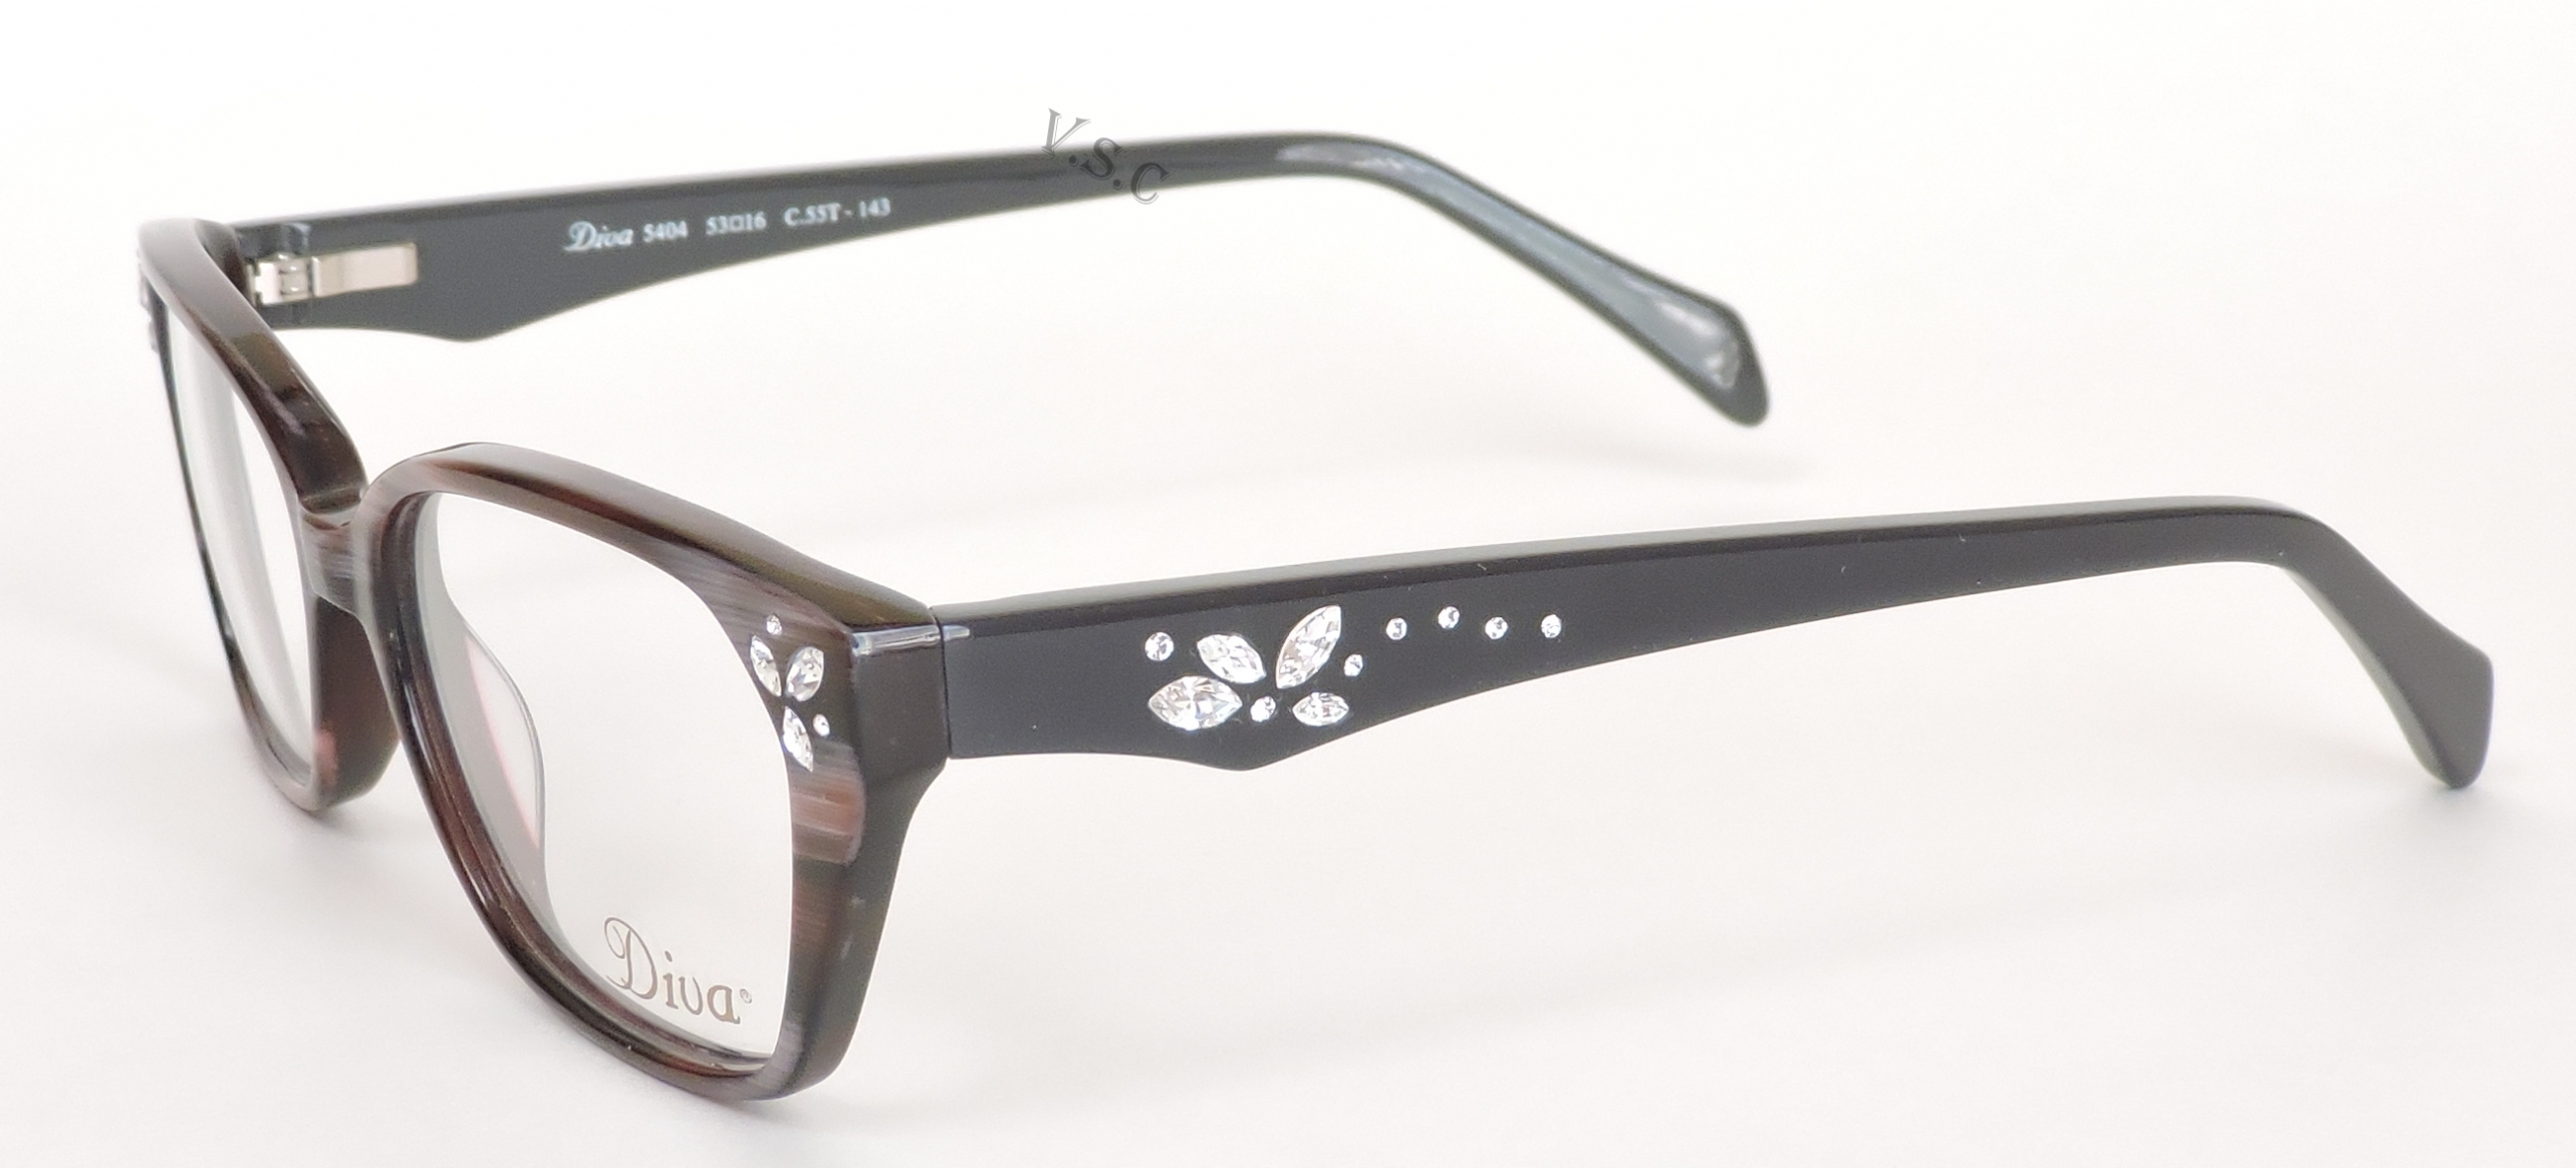 Buy Diva Eyeglasses directly from OpticsFast.com